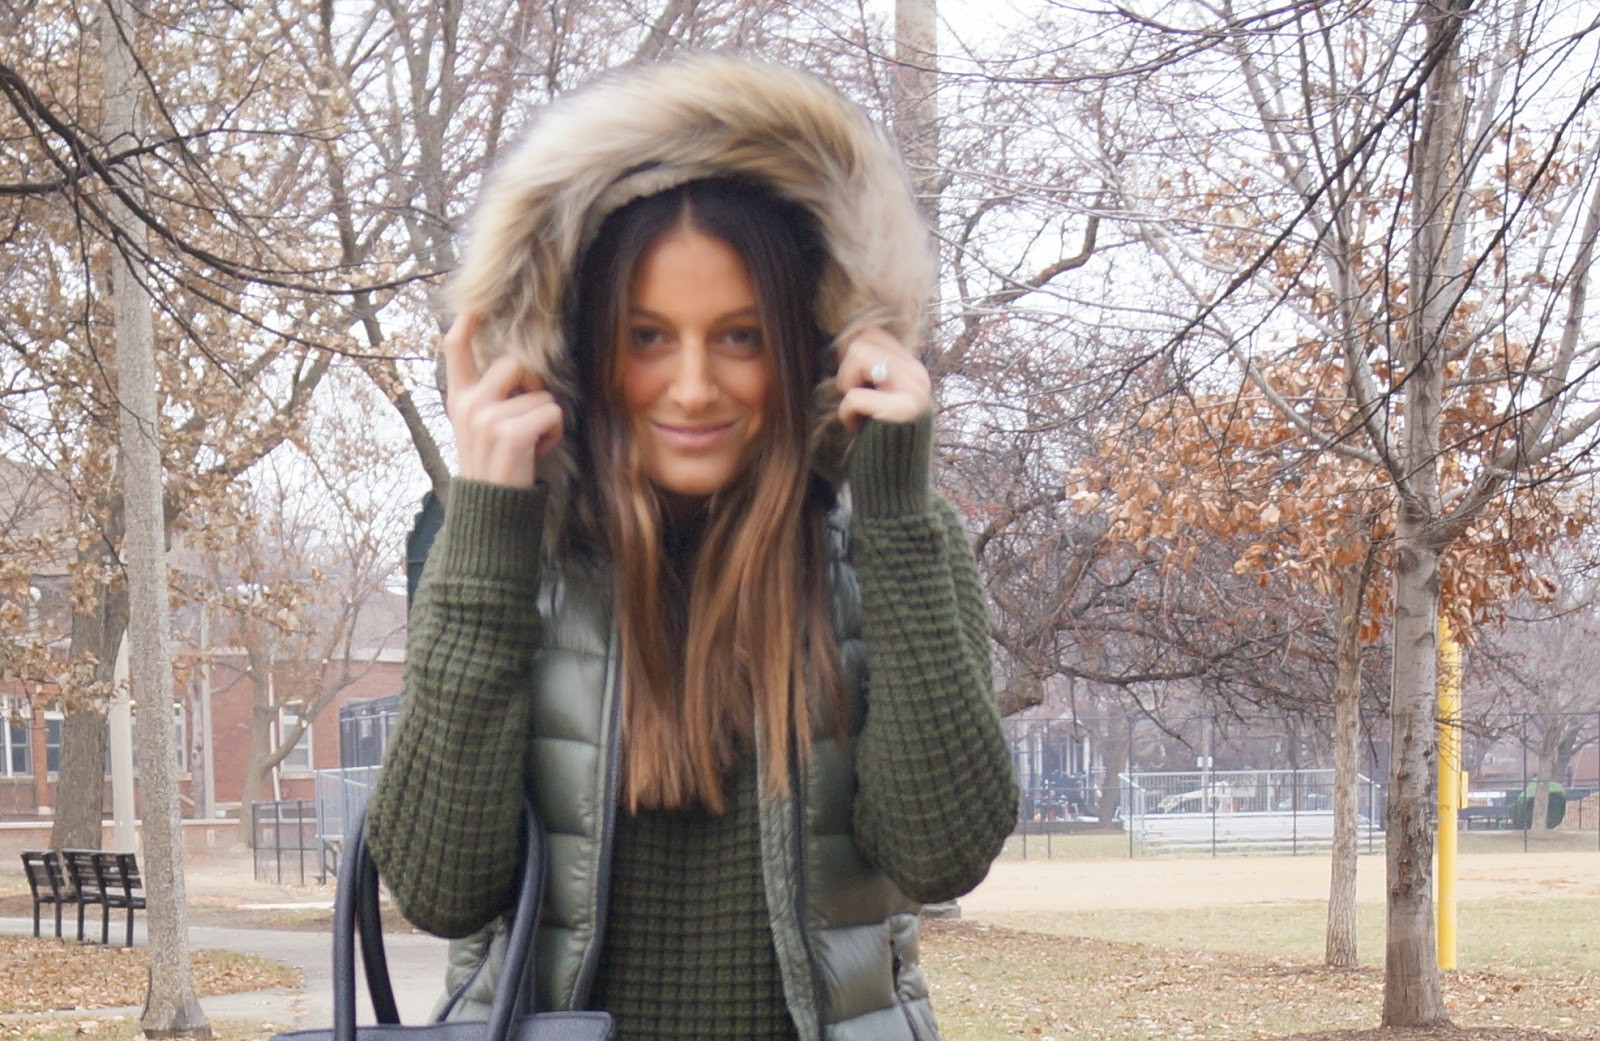 green puffer vest with fur